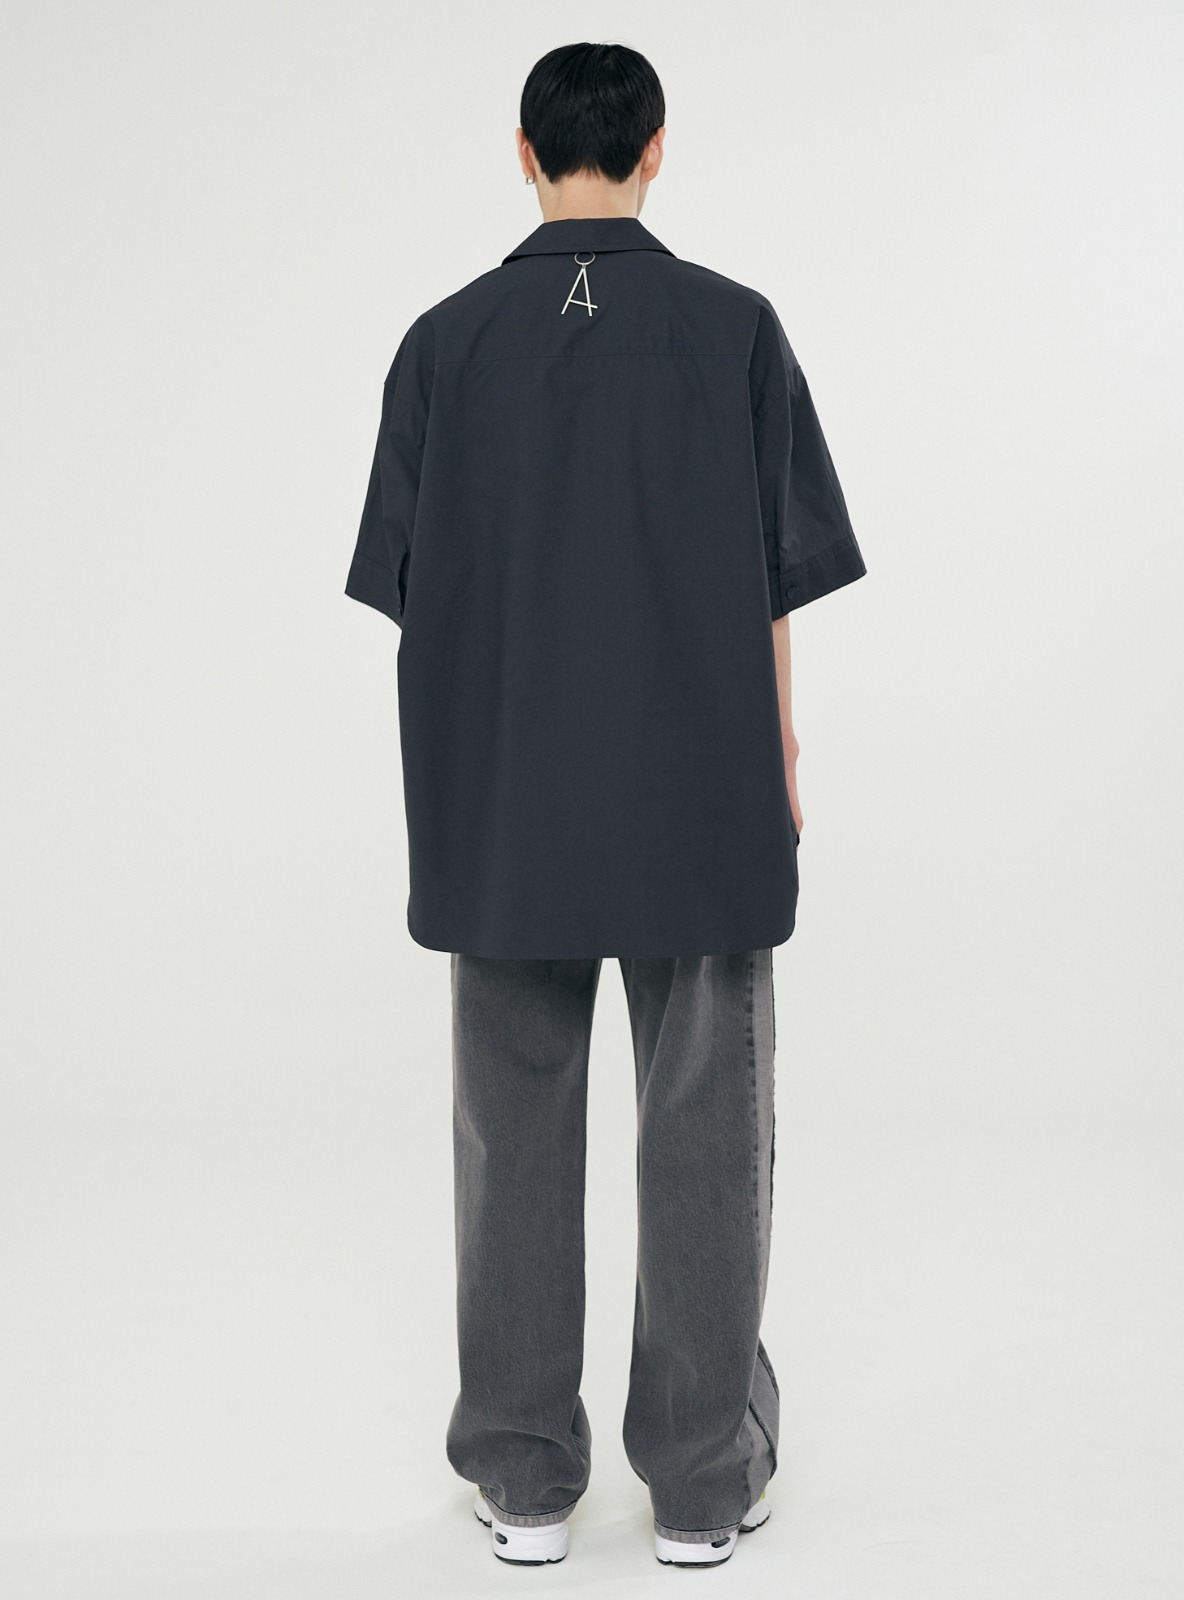 OPEN COLLAR AVANTGARDE SHIRT CHARCOAL